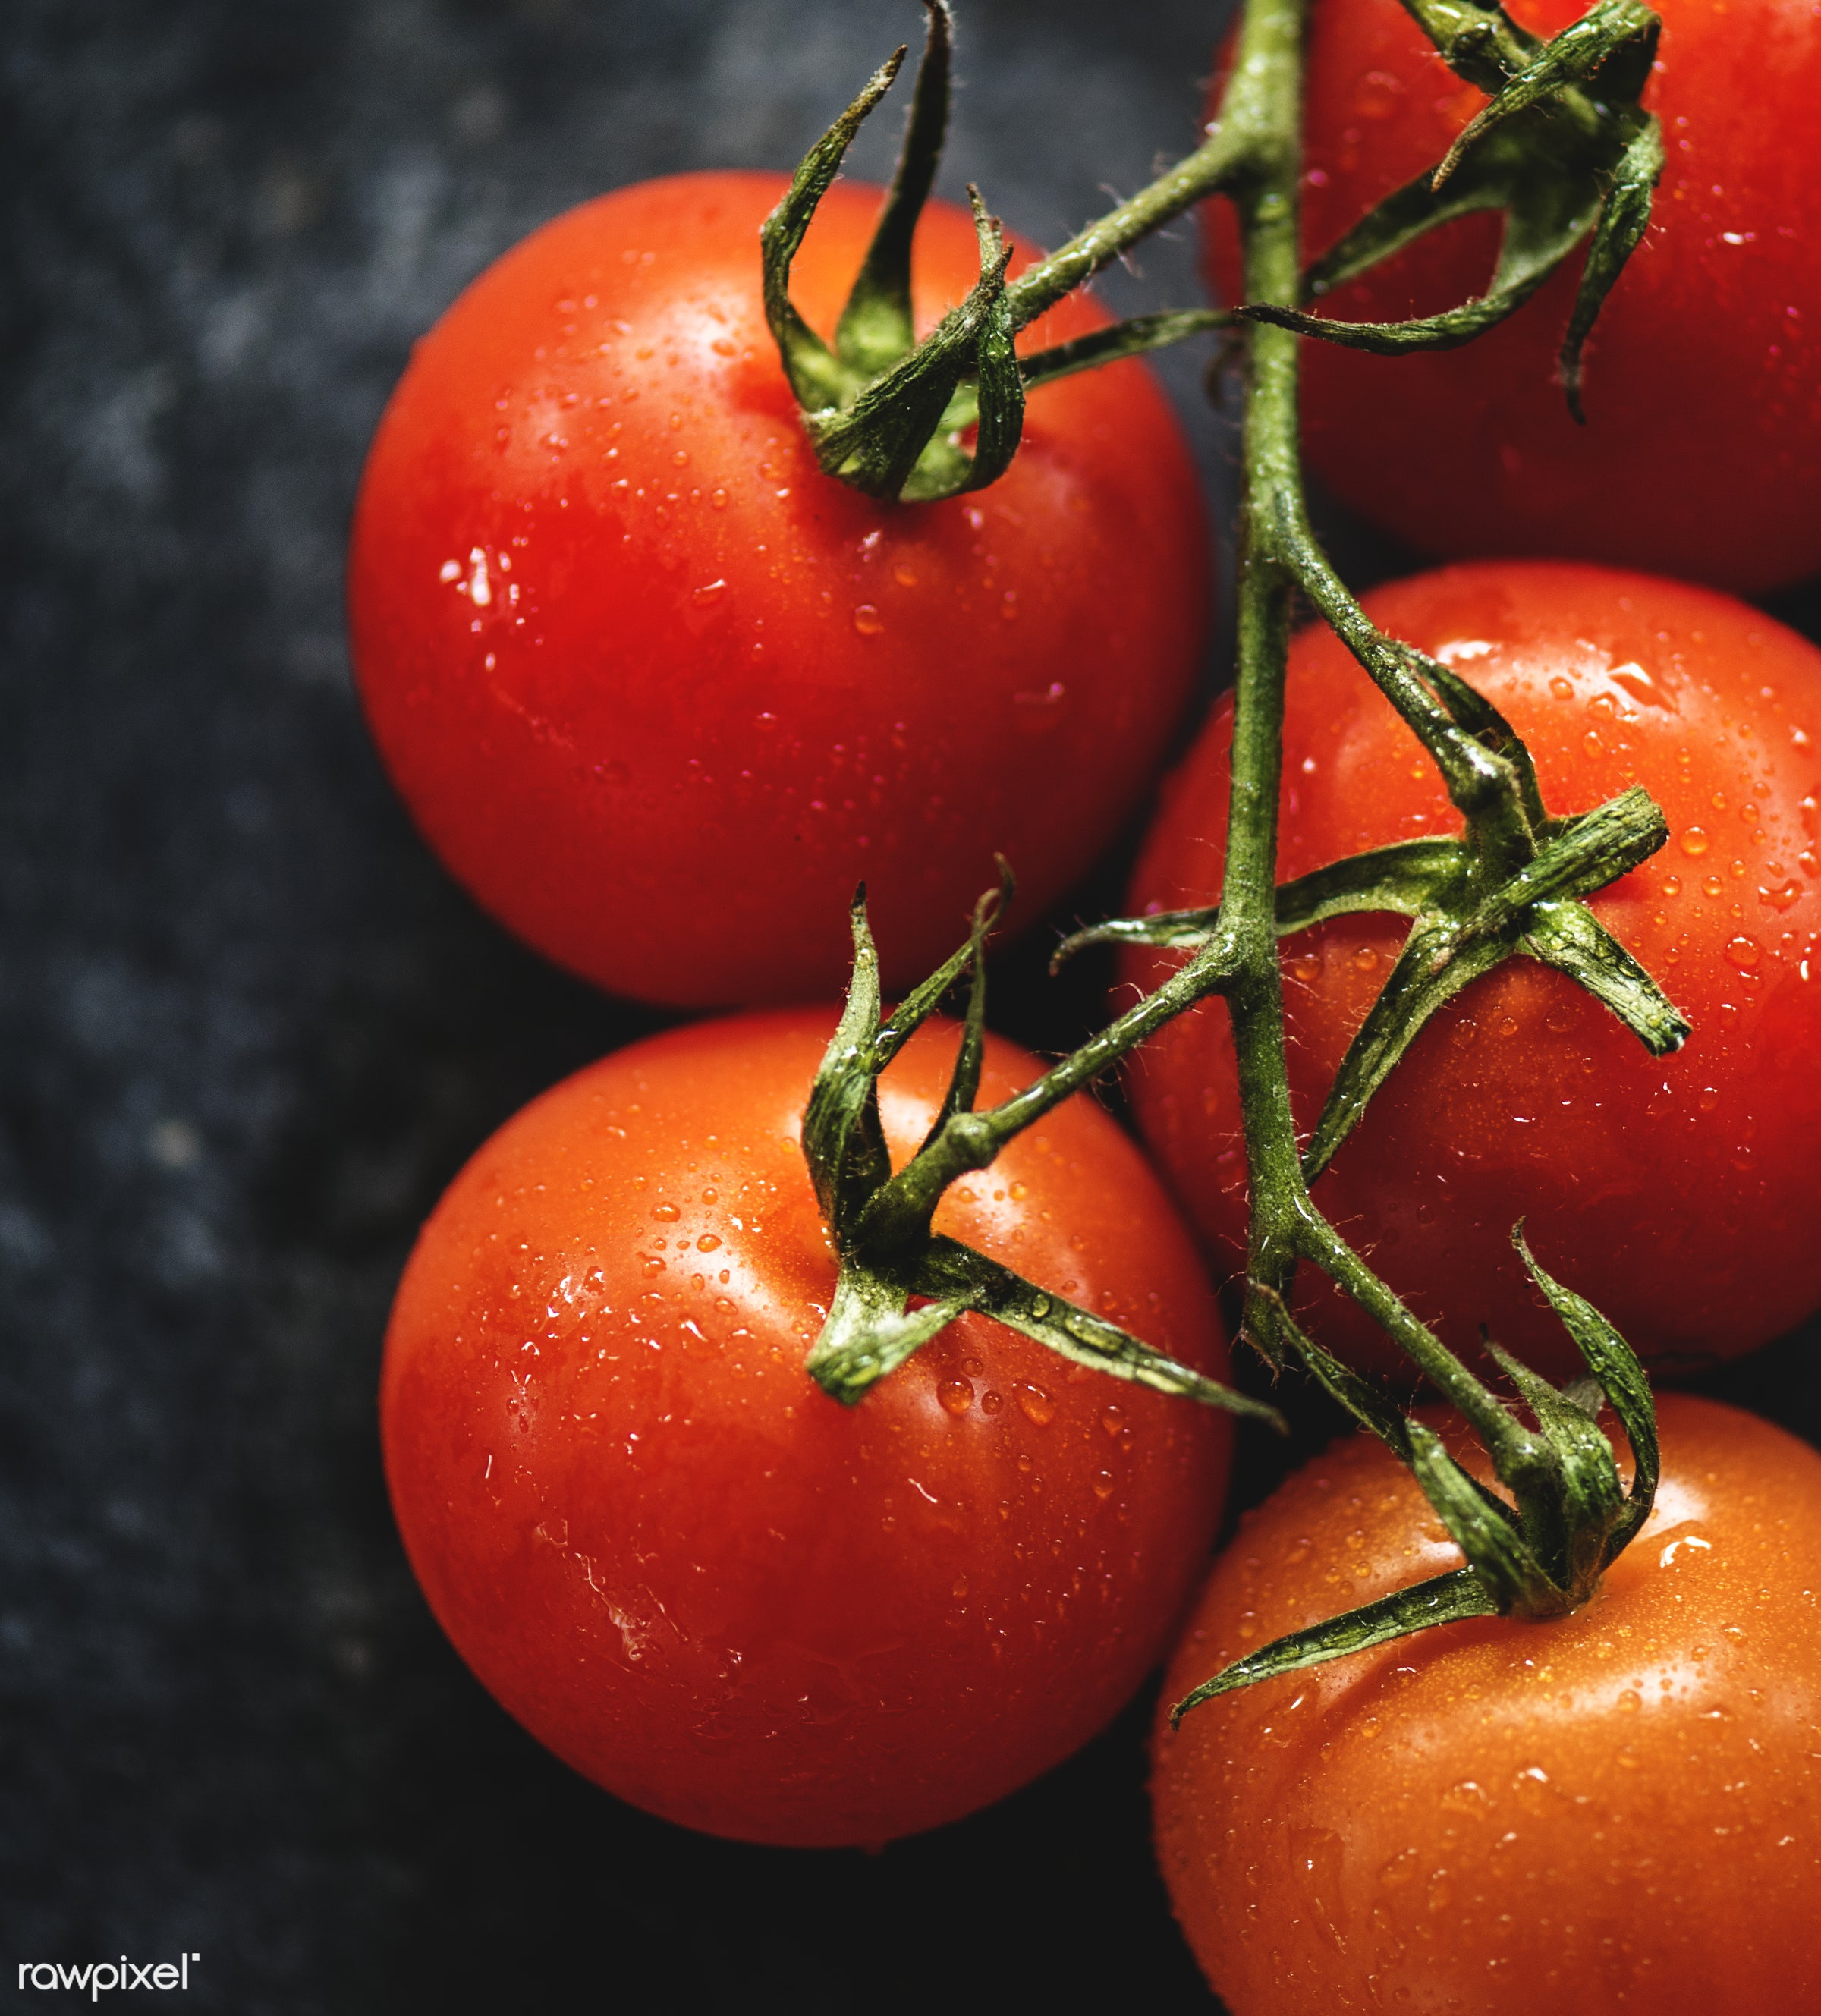 Fresh tomatoes - raw, plant, nobody, tomato, real, organic, red, nature, fresh, food, background, ripe, cultivated,...